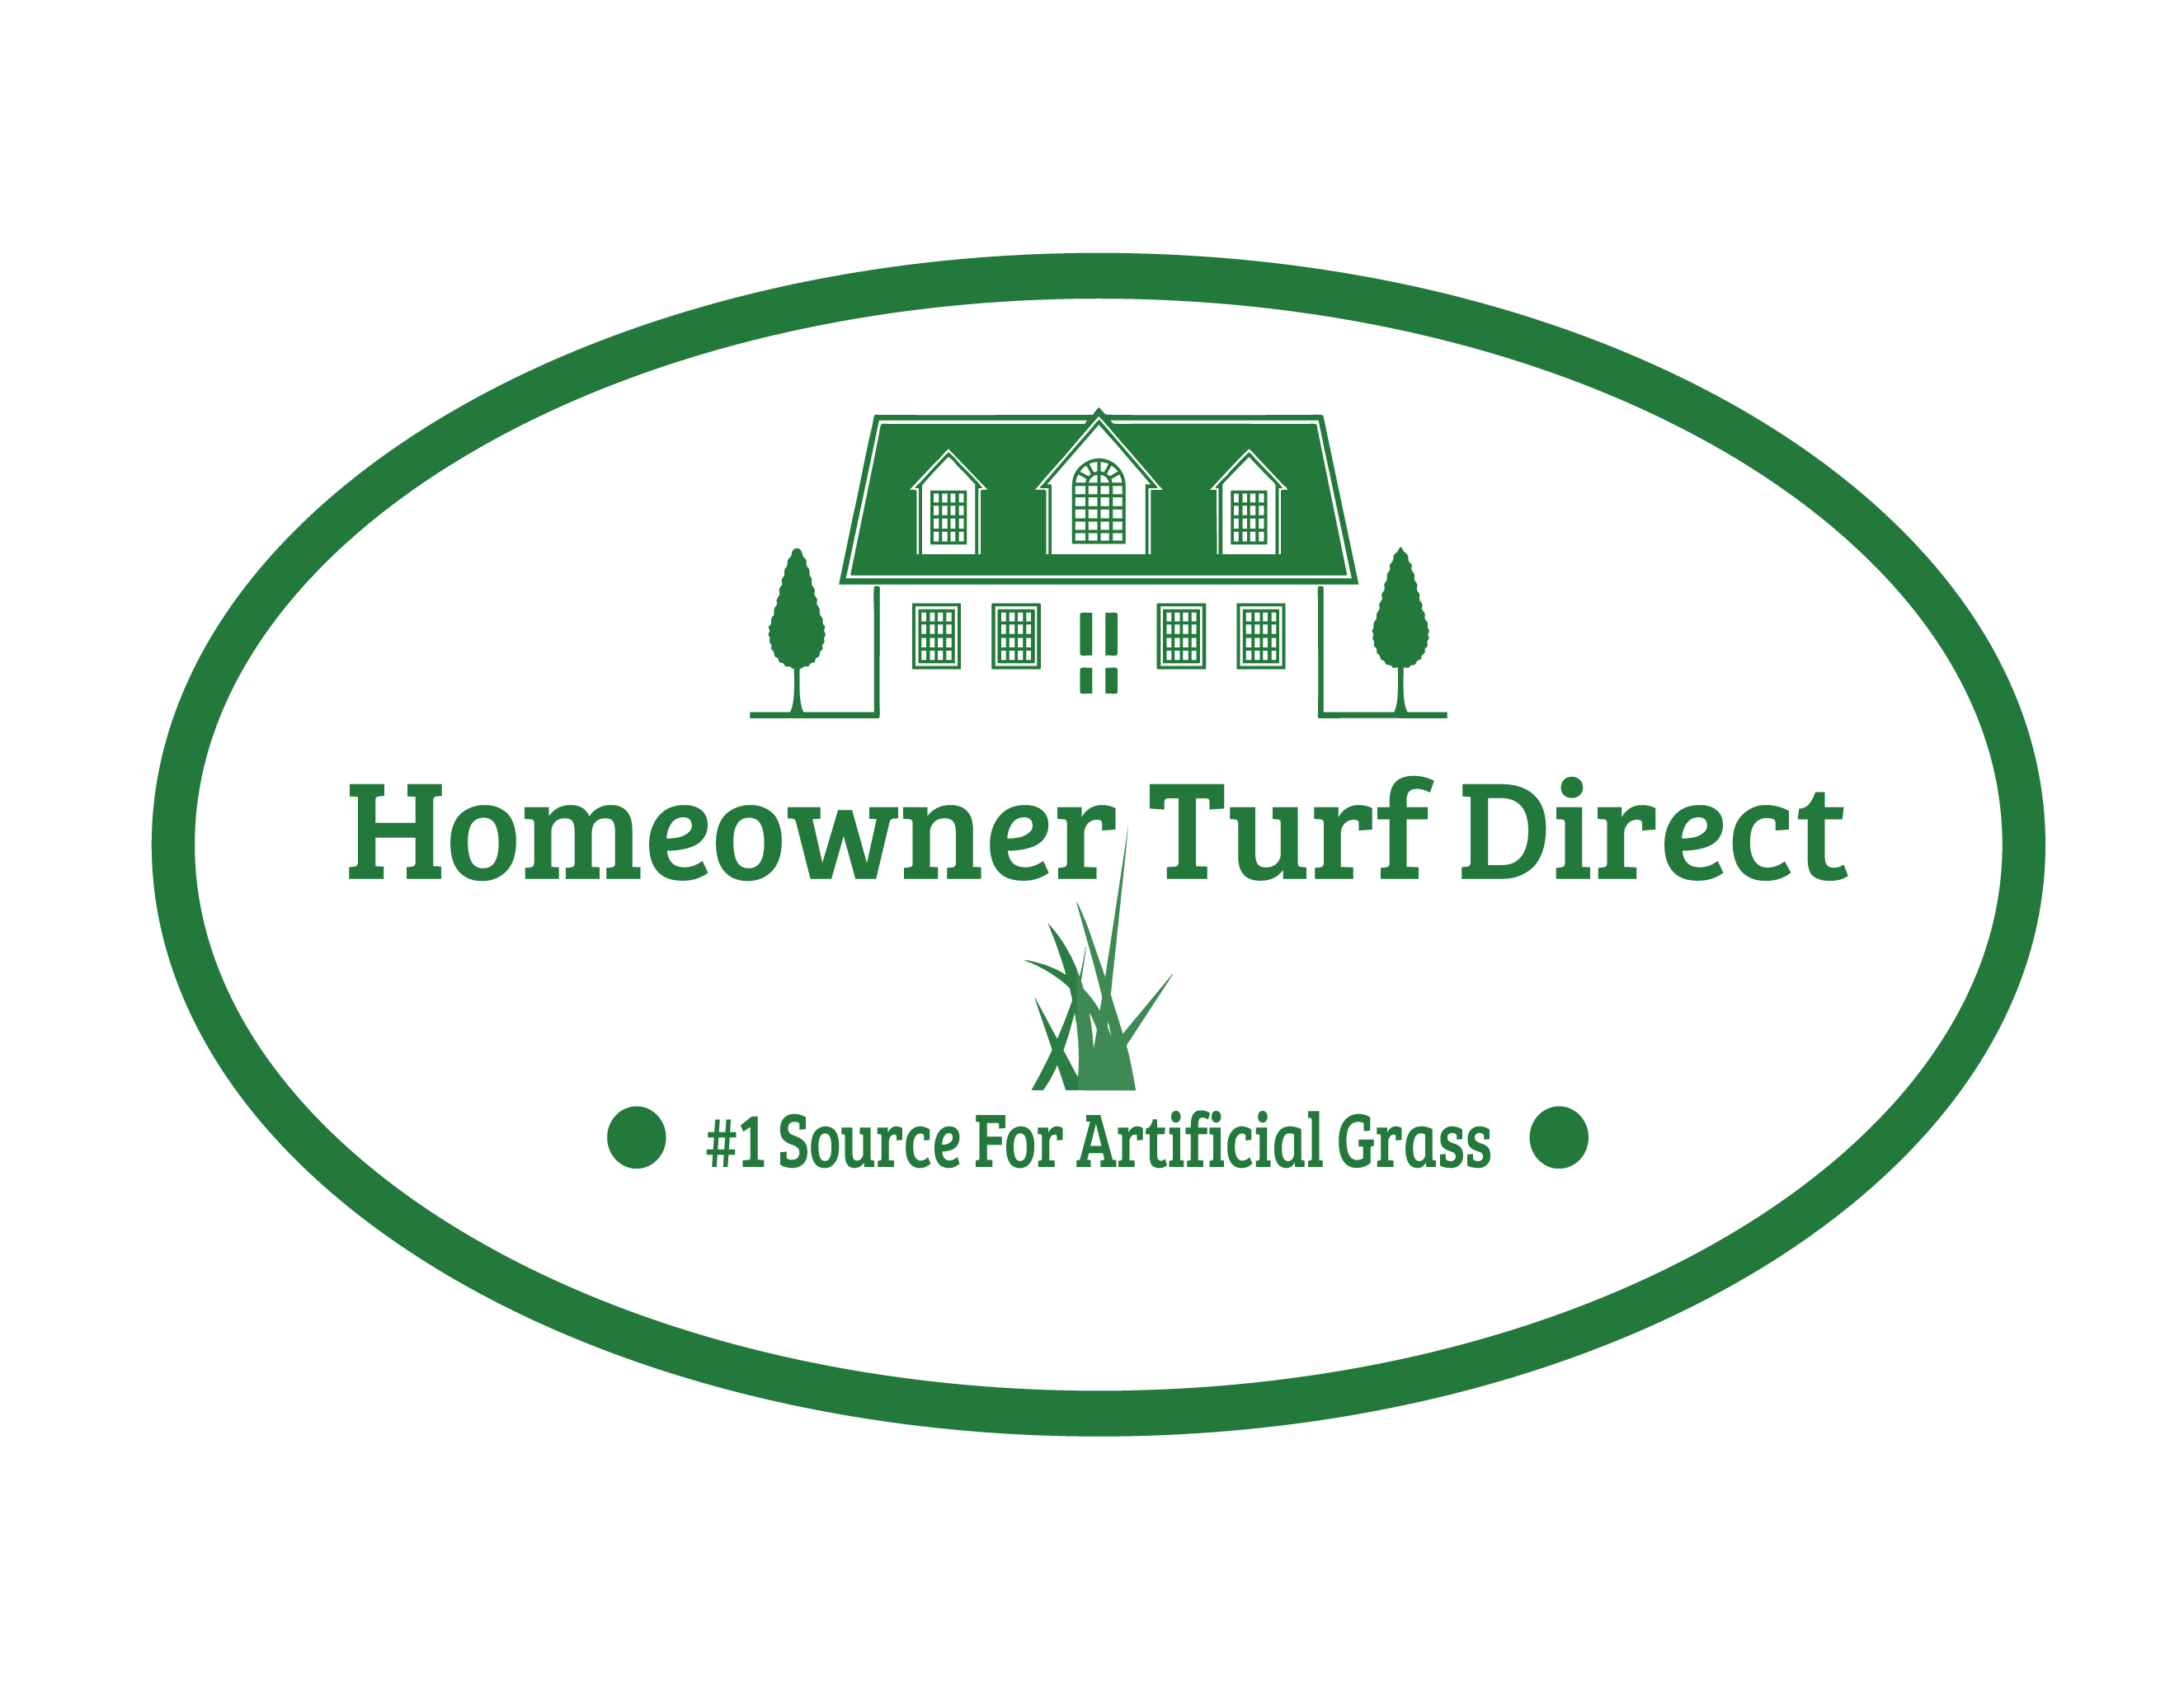 Homeowner Turf Direct